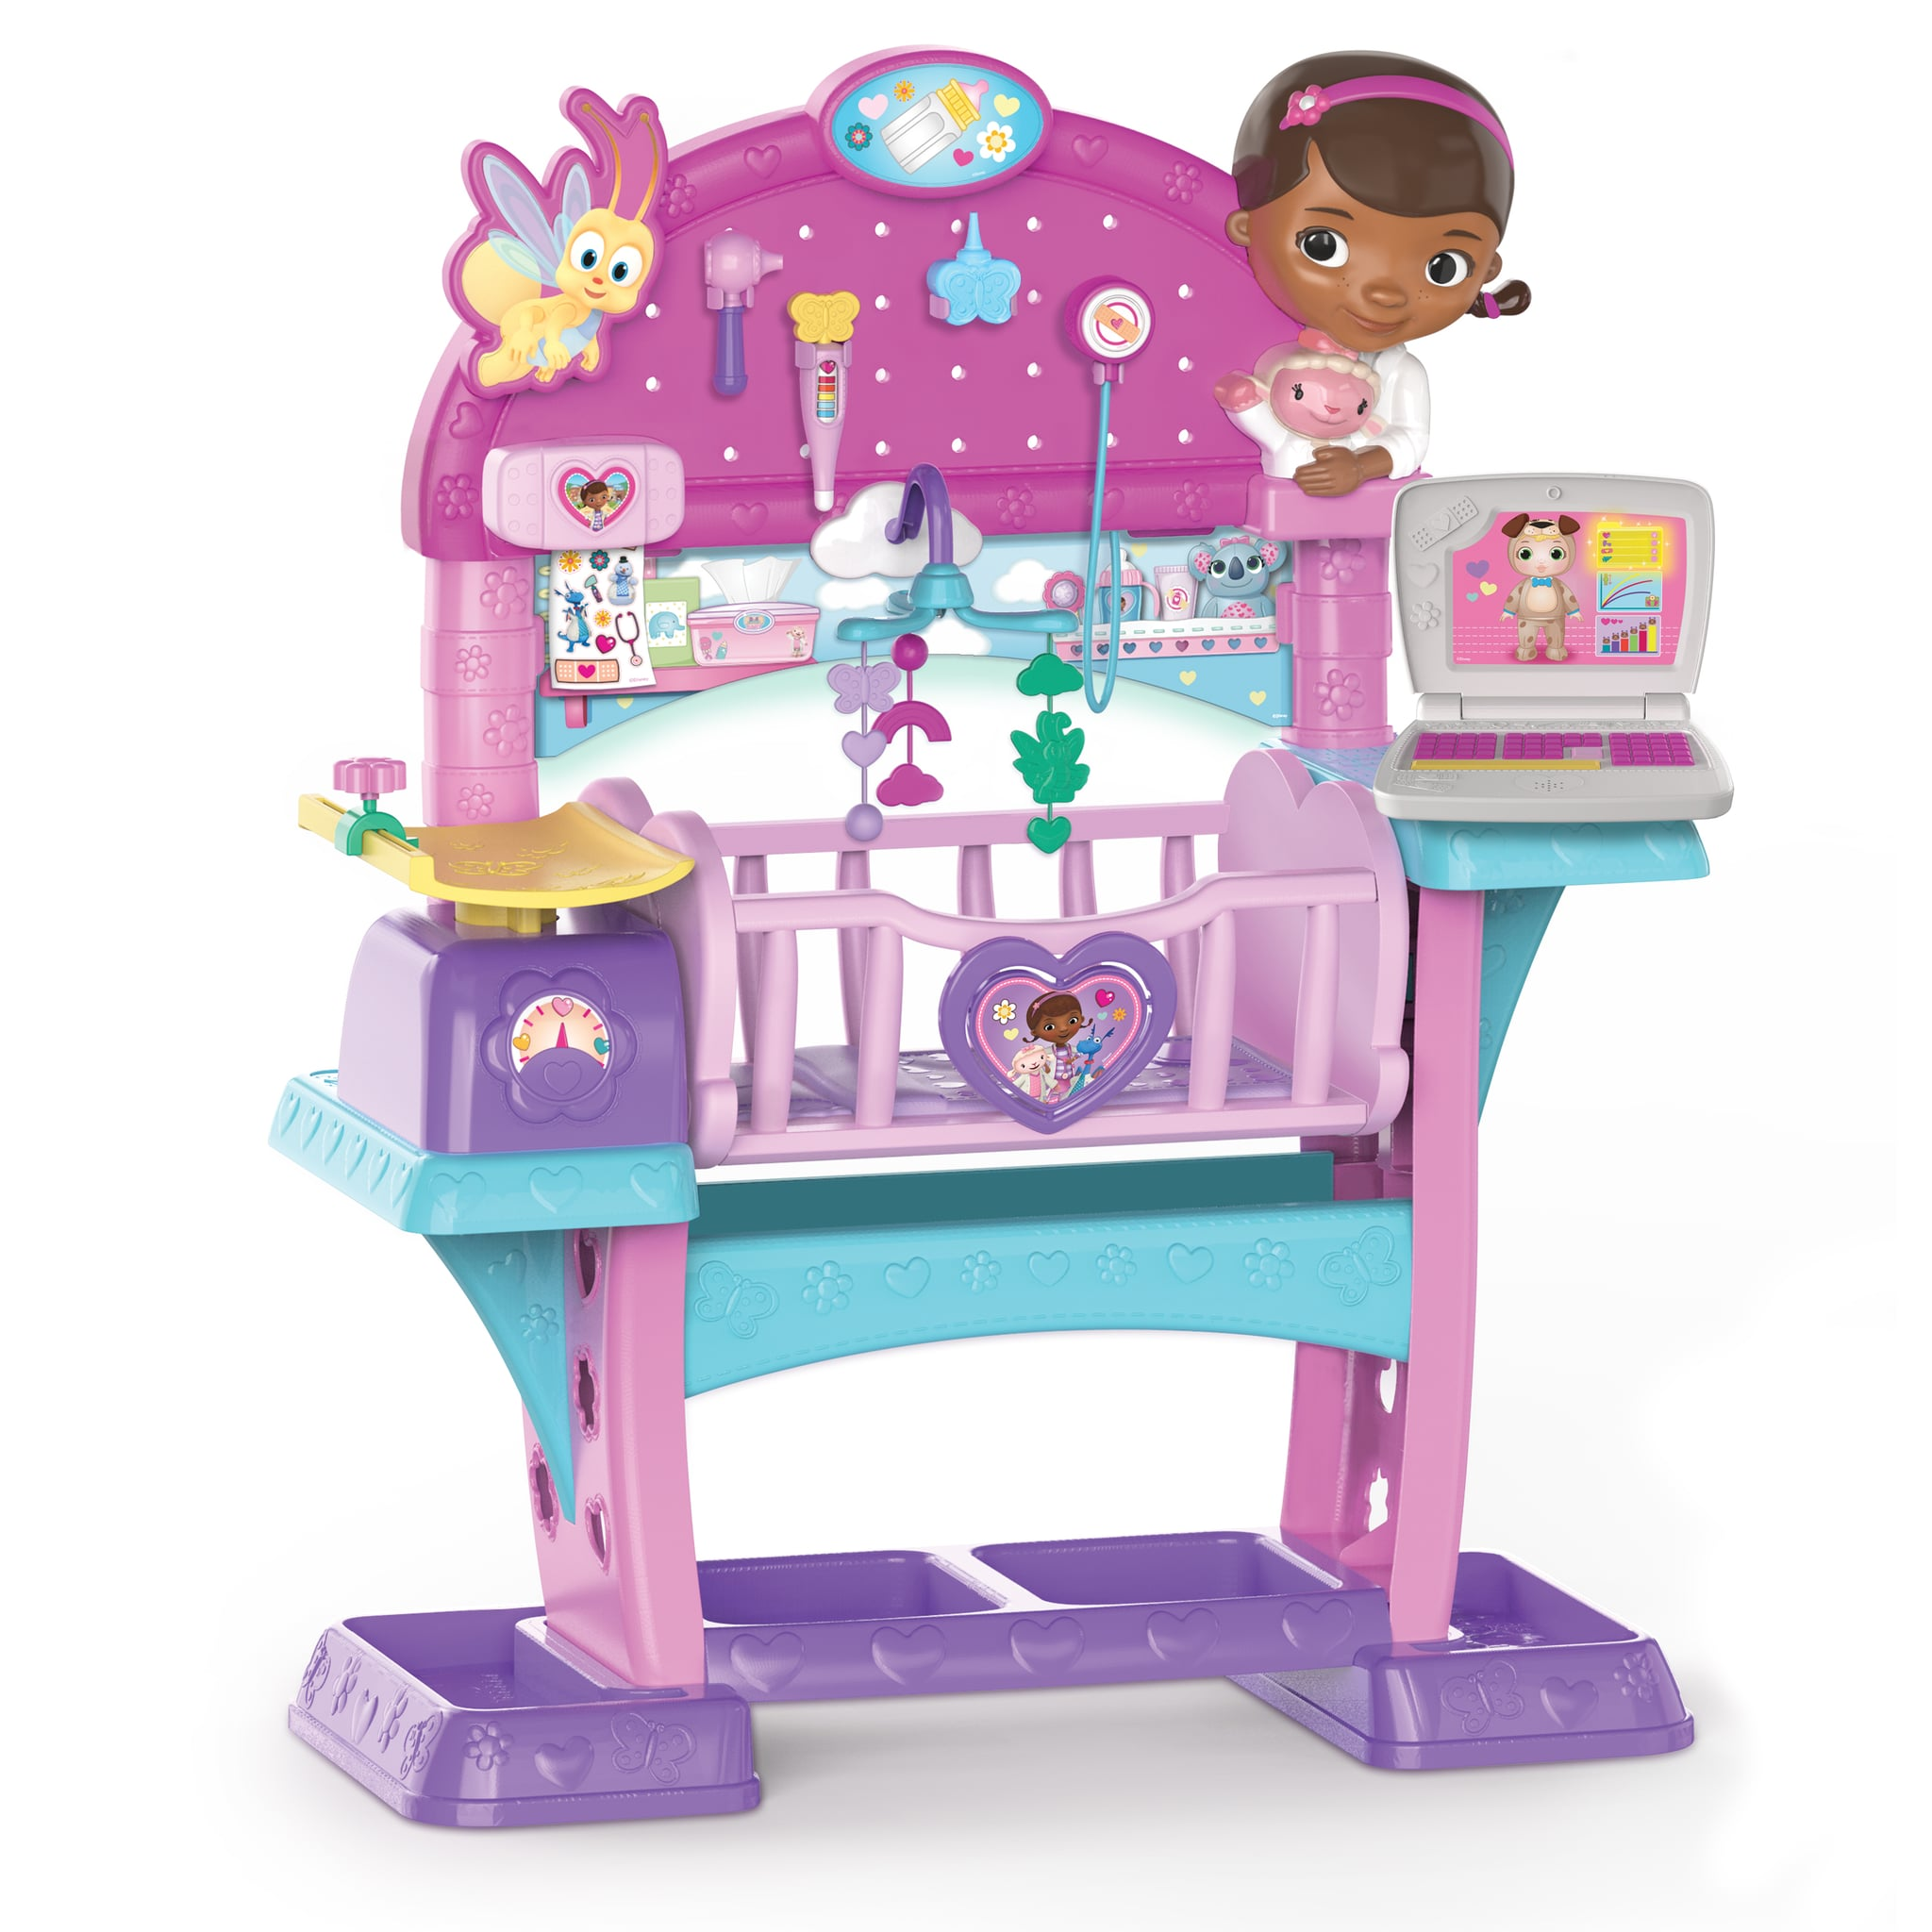 Best Toys For 3 Year Olds Christmas 2021 The Best Toys And Gift Ideas For 3 Year Olds In 2021 Popsugar Family